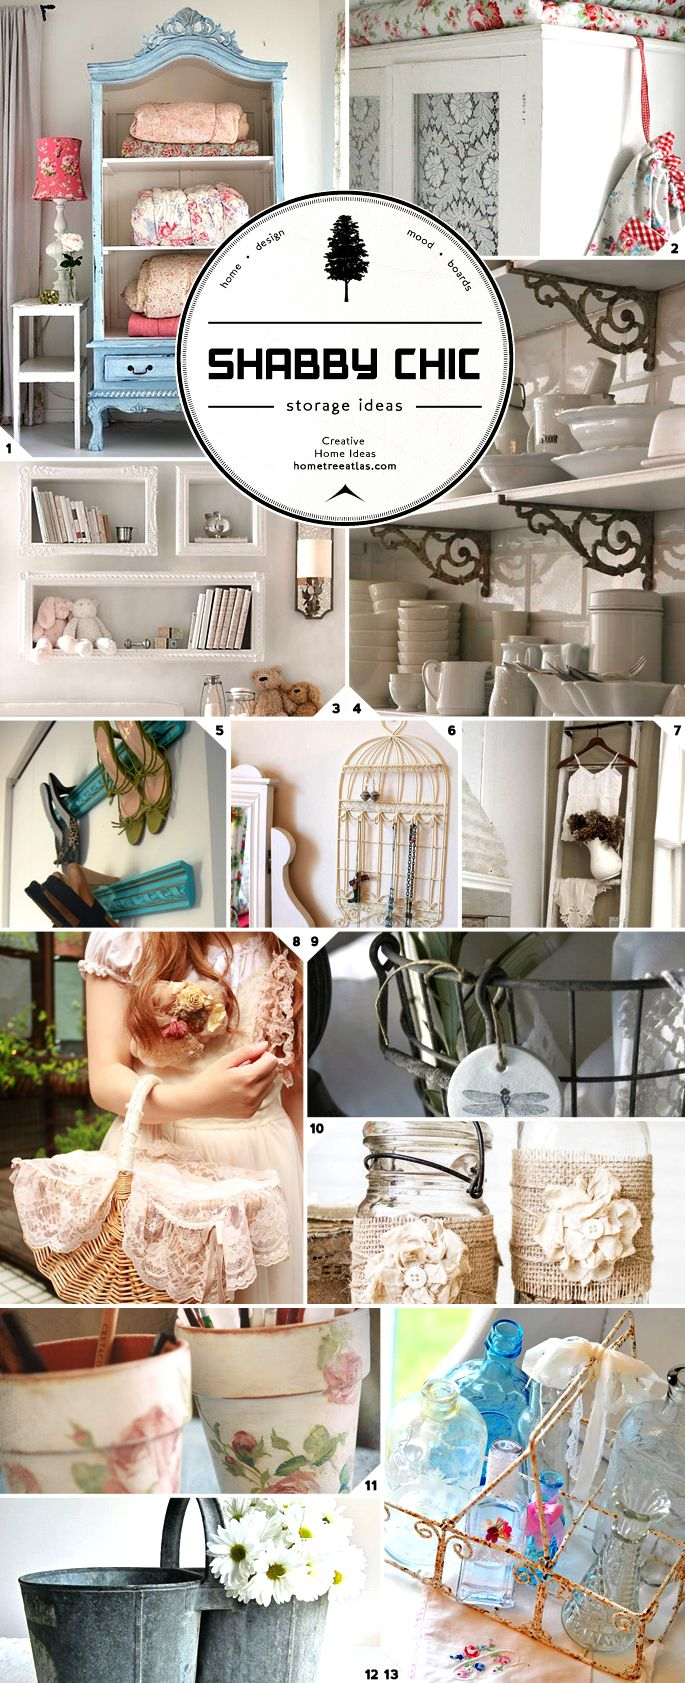 Organizing in Style: Shabby Chic Storage Ideas